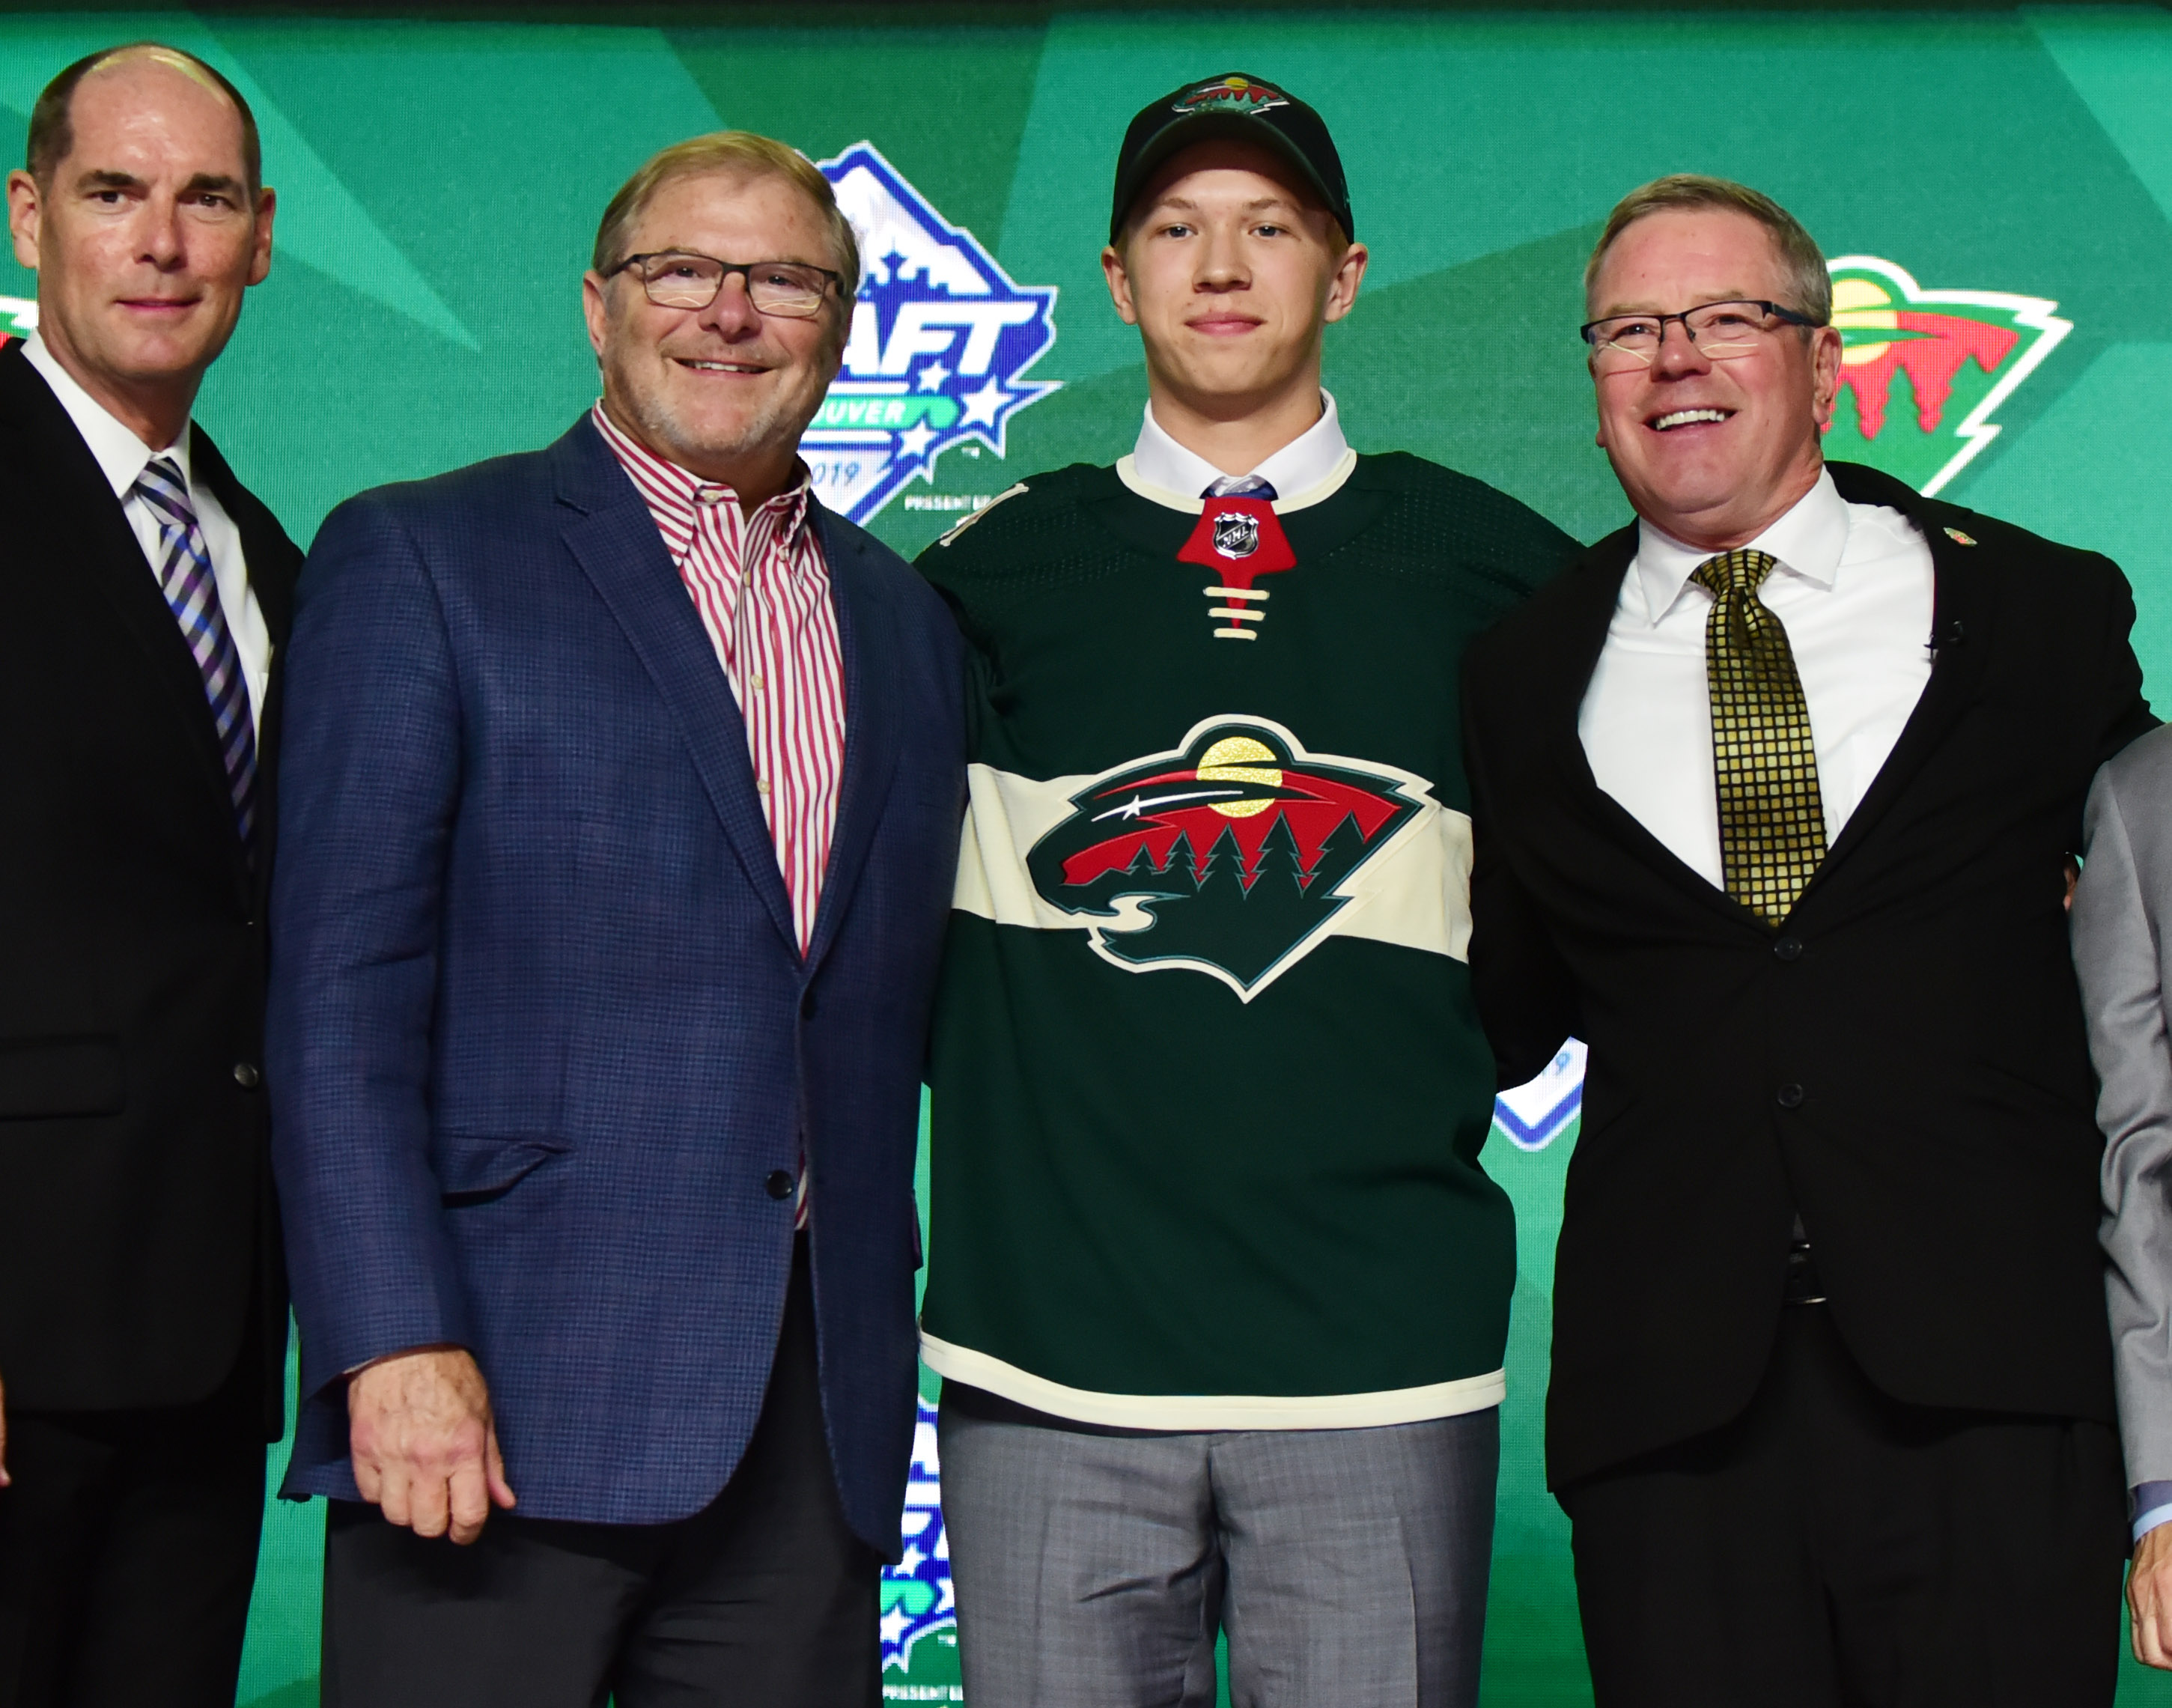 Minnesota Wild select Matthew Boldy in the 1st round of the 2019 NHL Entry Draft